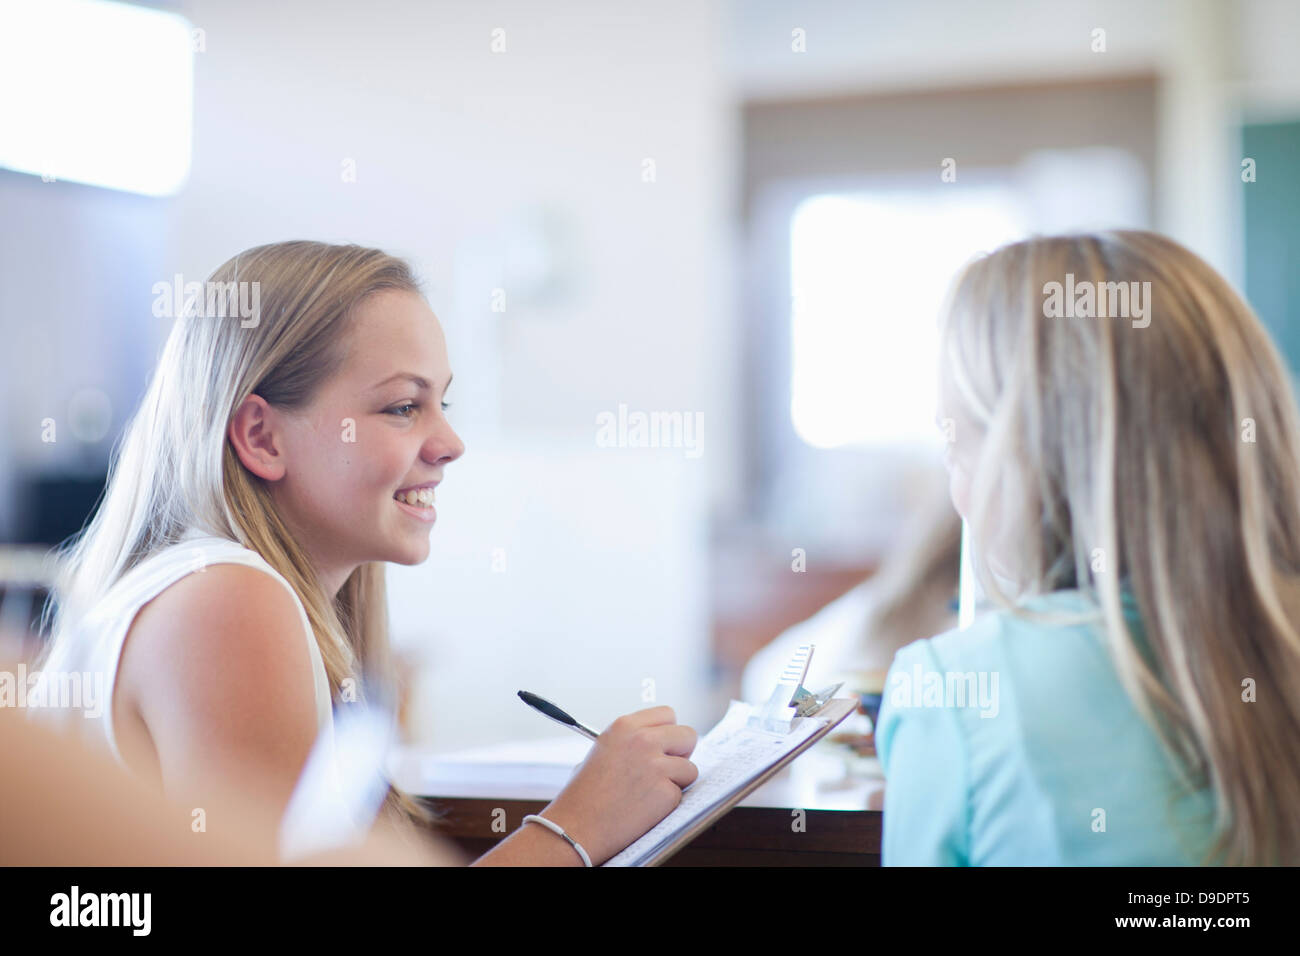 School girls in discussion - Stock Image